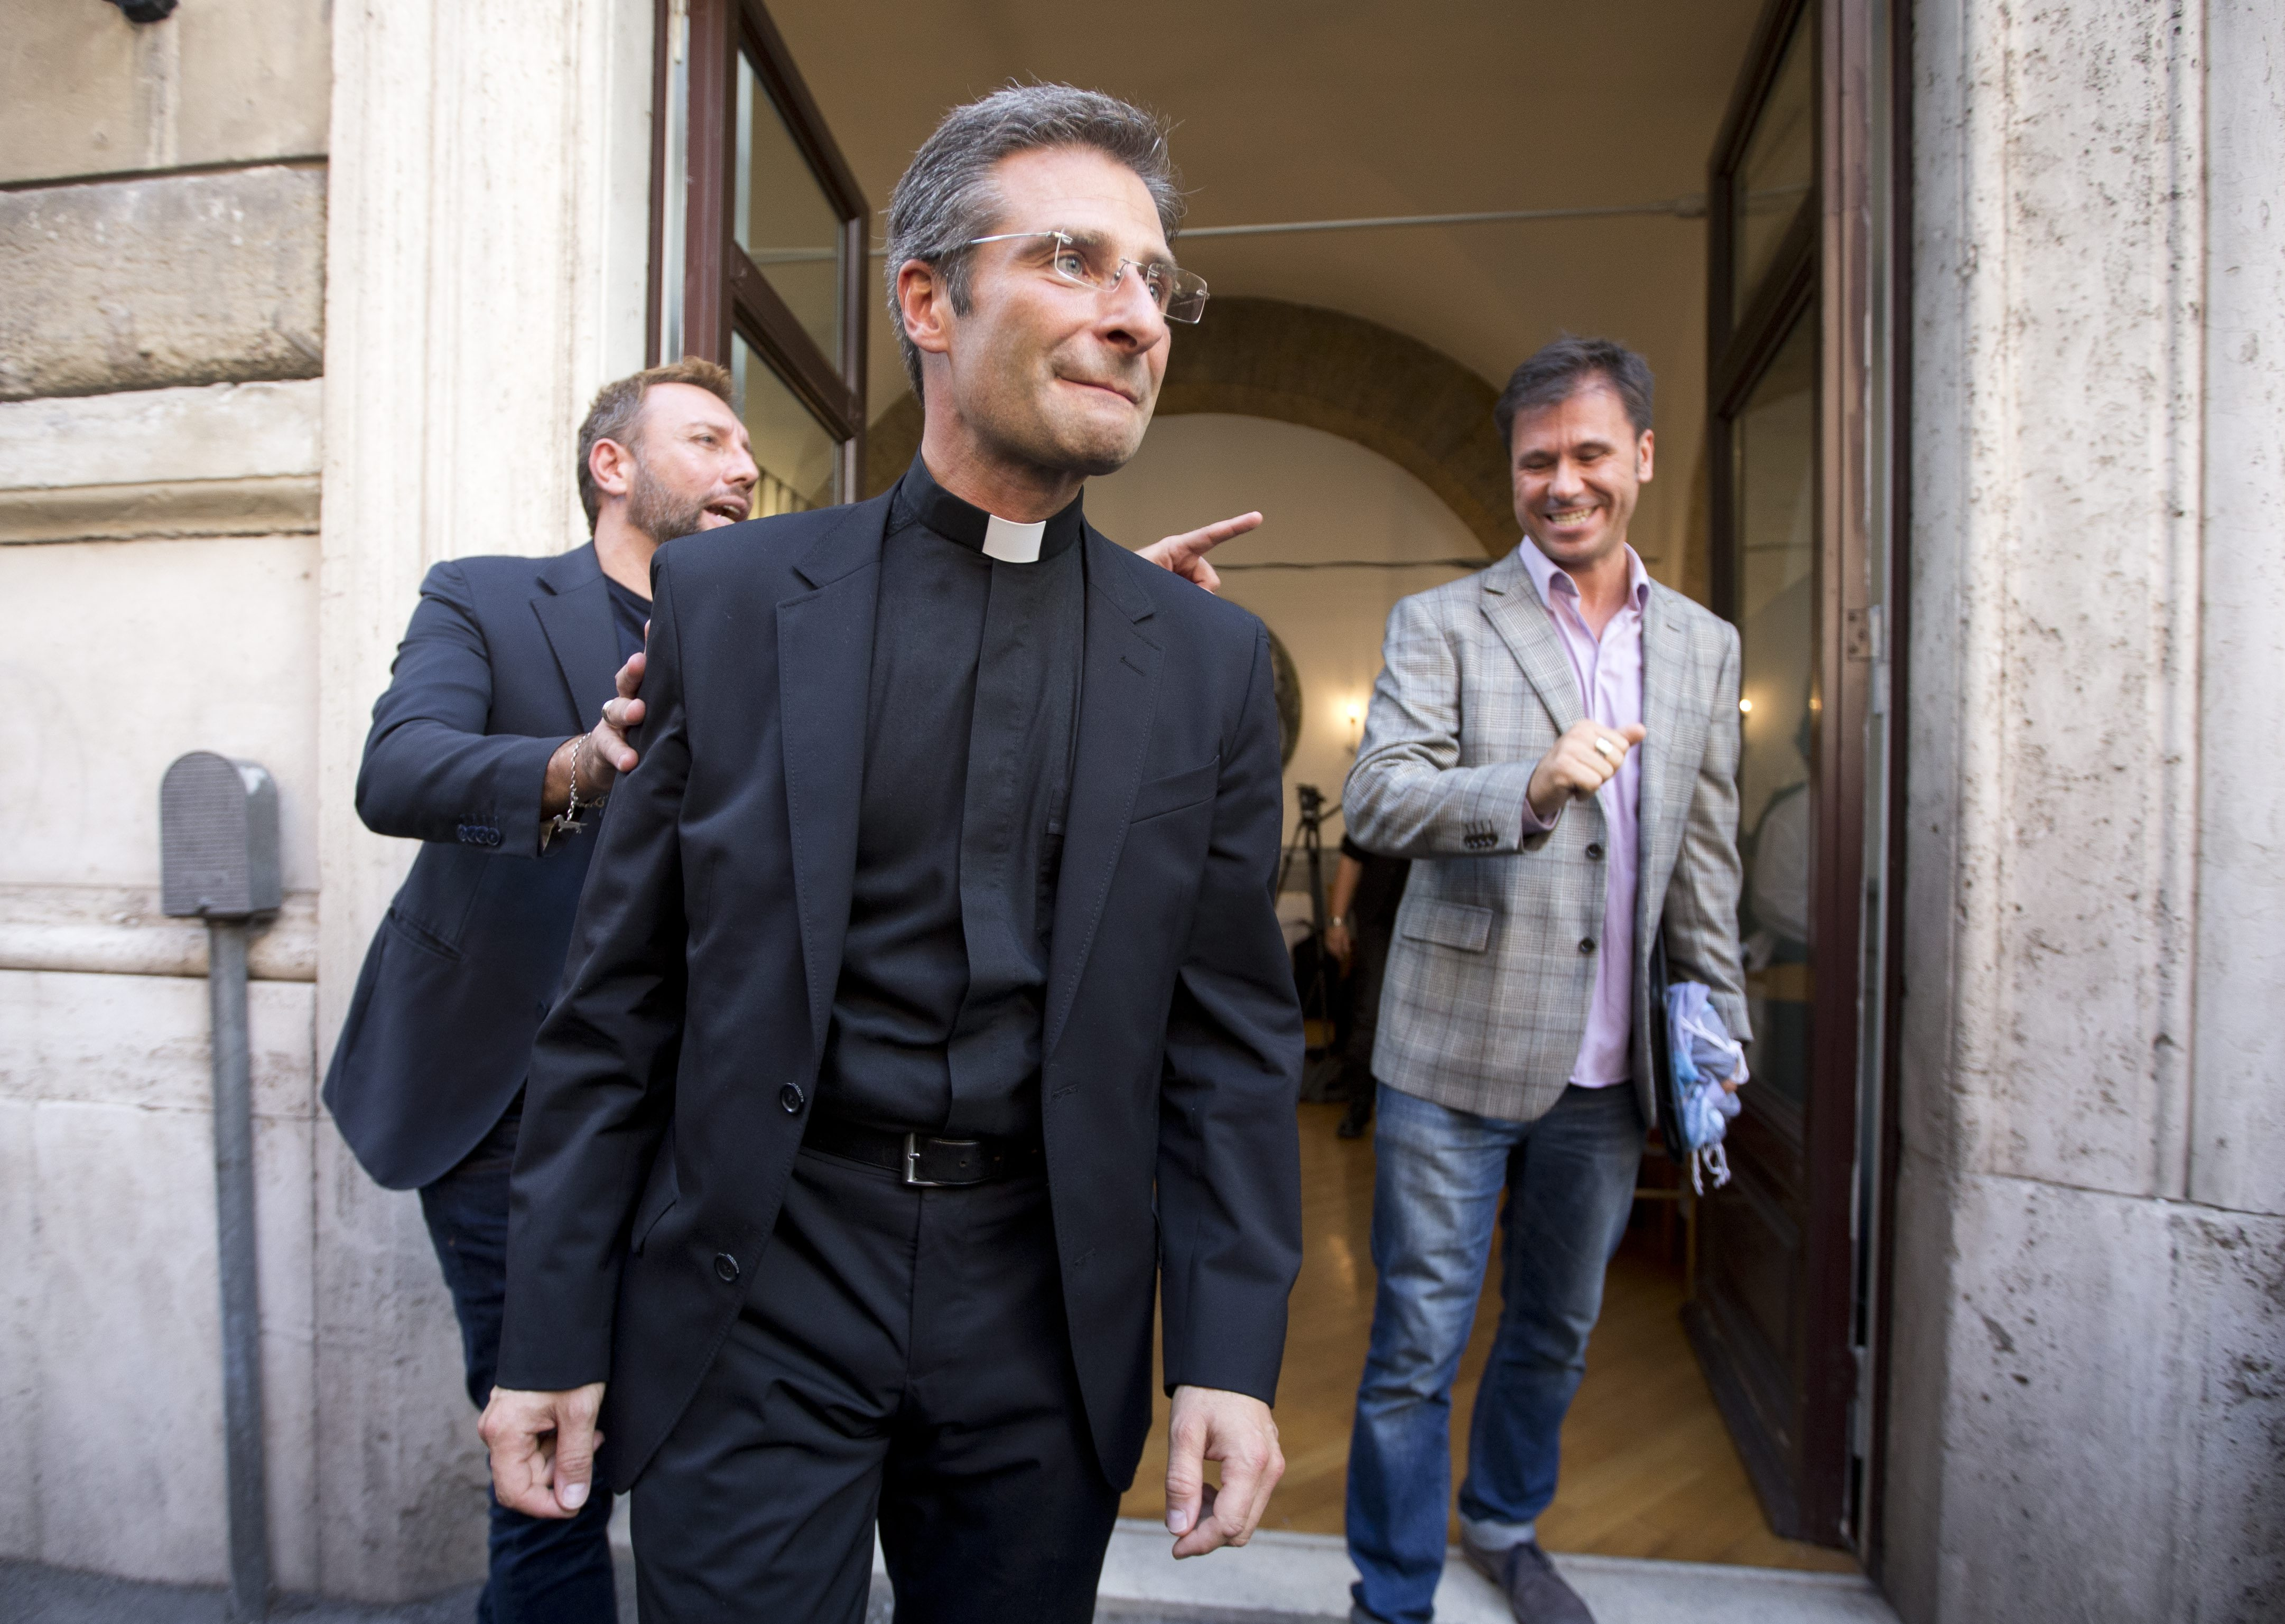 Monsignor Krzysztof Charamsa, center, and his partner Eduard, right,  surname not given, leave a restaurant after a press conference in downtown Rome, Saturday Oct. 3, 2015. Vatican on Saturday fired a monsignor who came out as gay on the eve of a big meeting of the world's bishops to discuss church outreach to gays, divorcees and more traditional Catholic families. (AP Photo/Alessandra Tarantino)